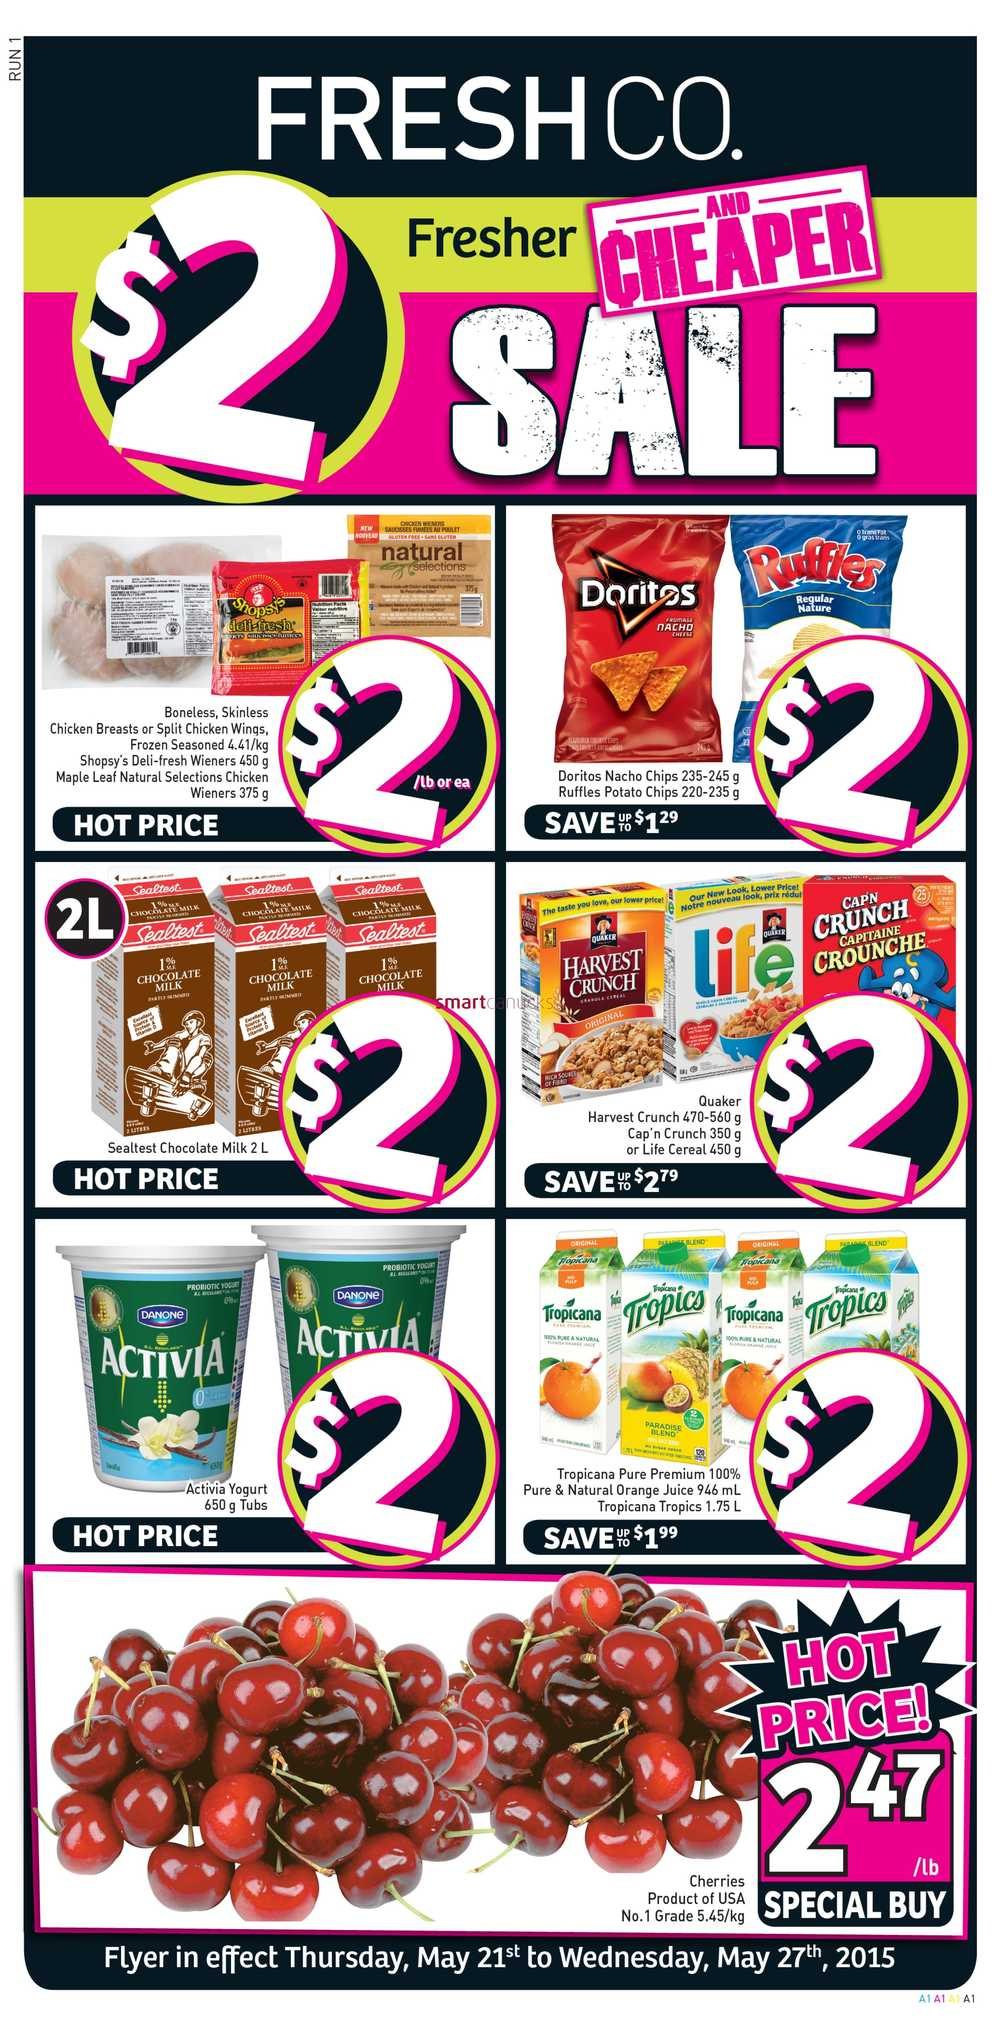 FreshCo Canada Weekly Flyers: Thursday, May 21 To Wednesday